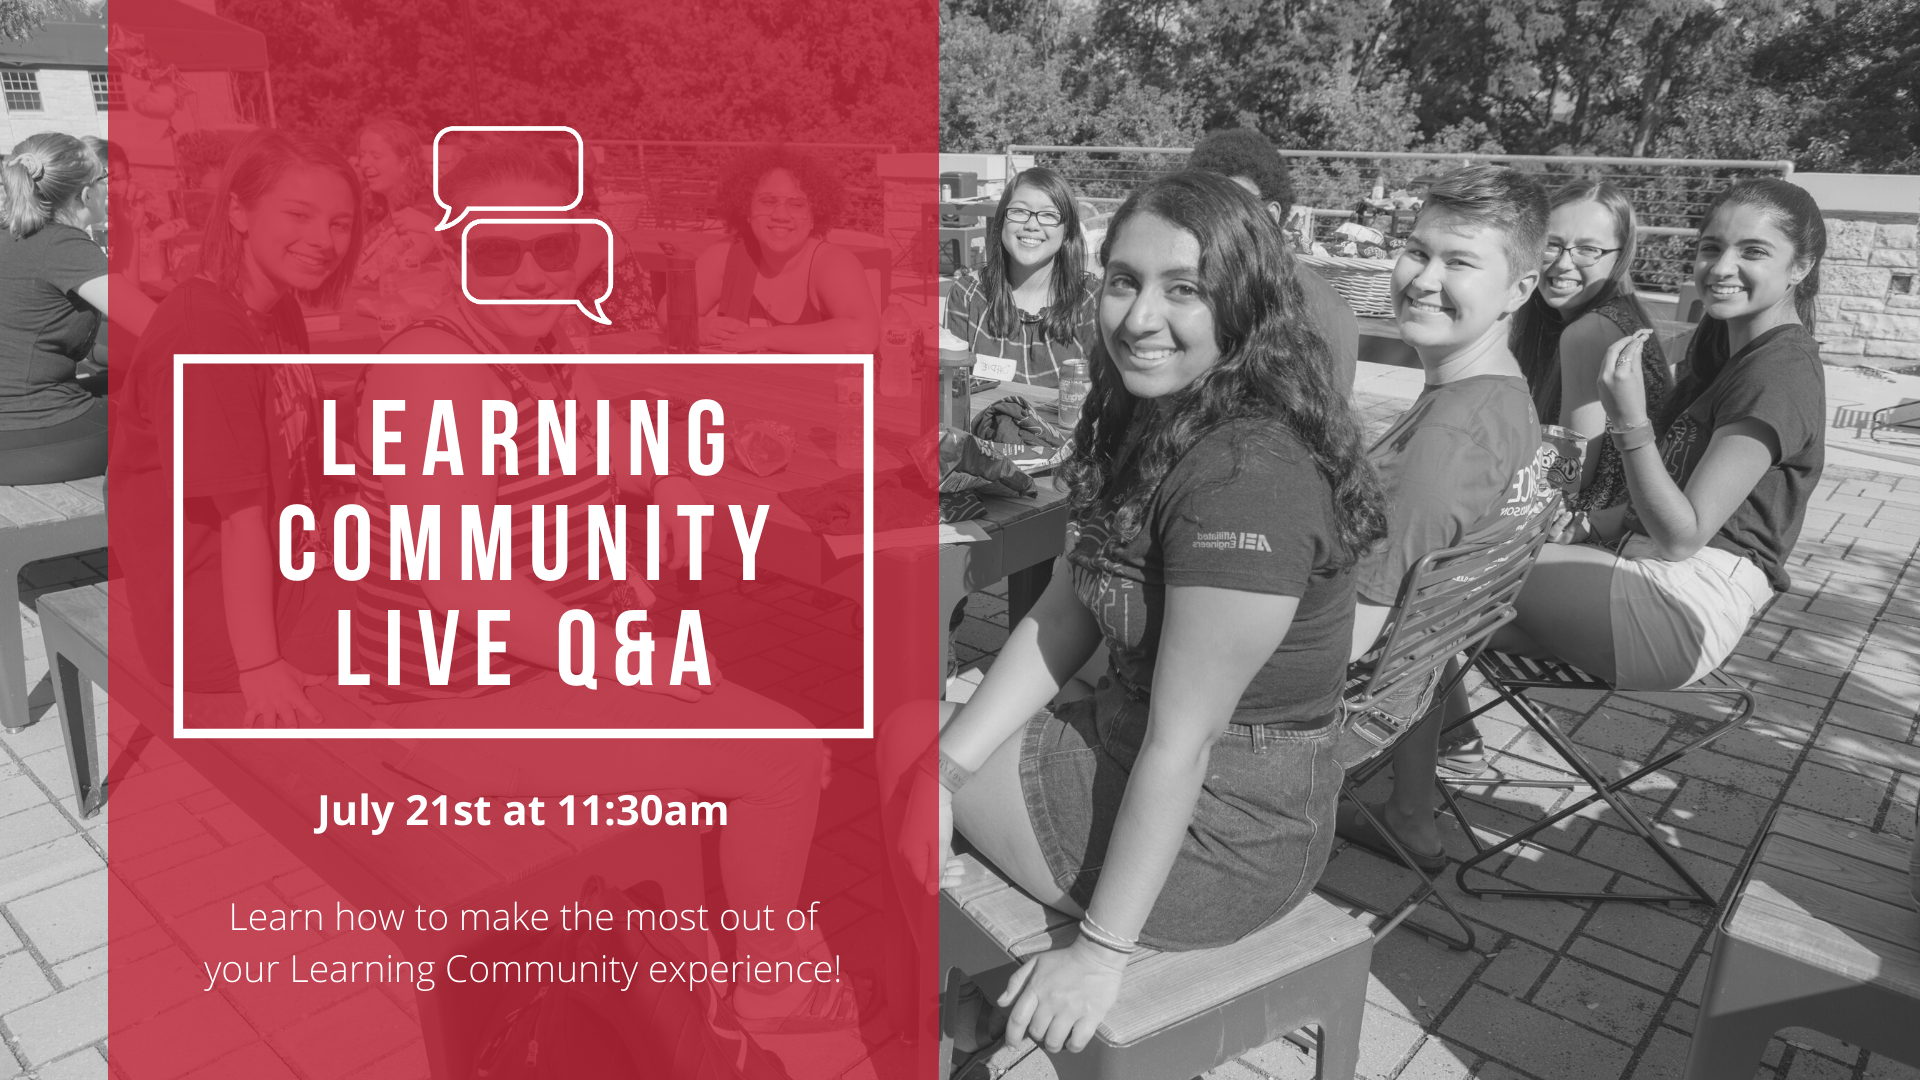 Learning Community Live Q & A, July 21st at 11:30am